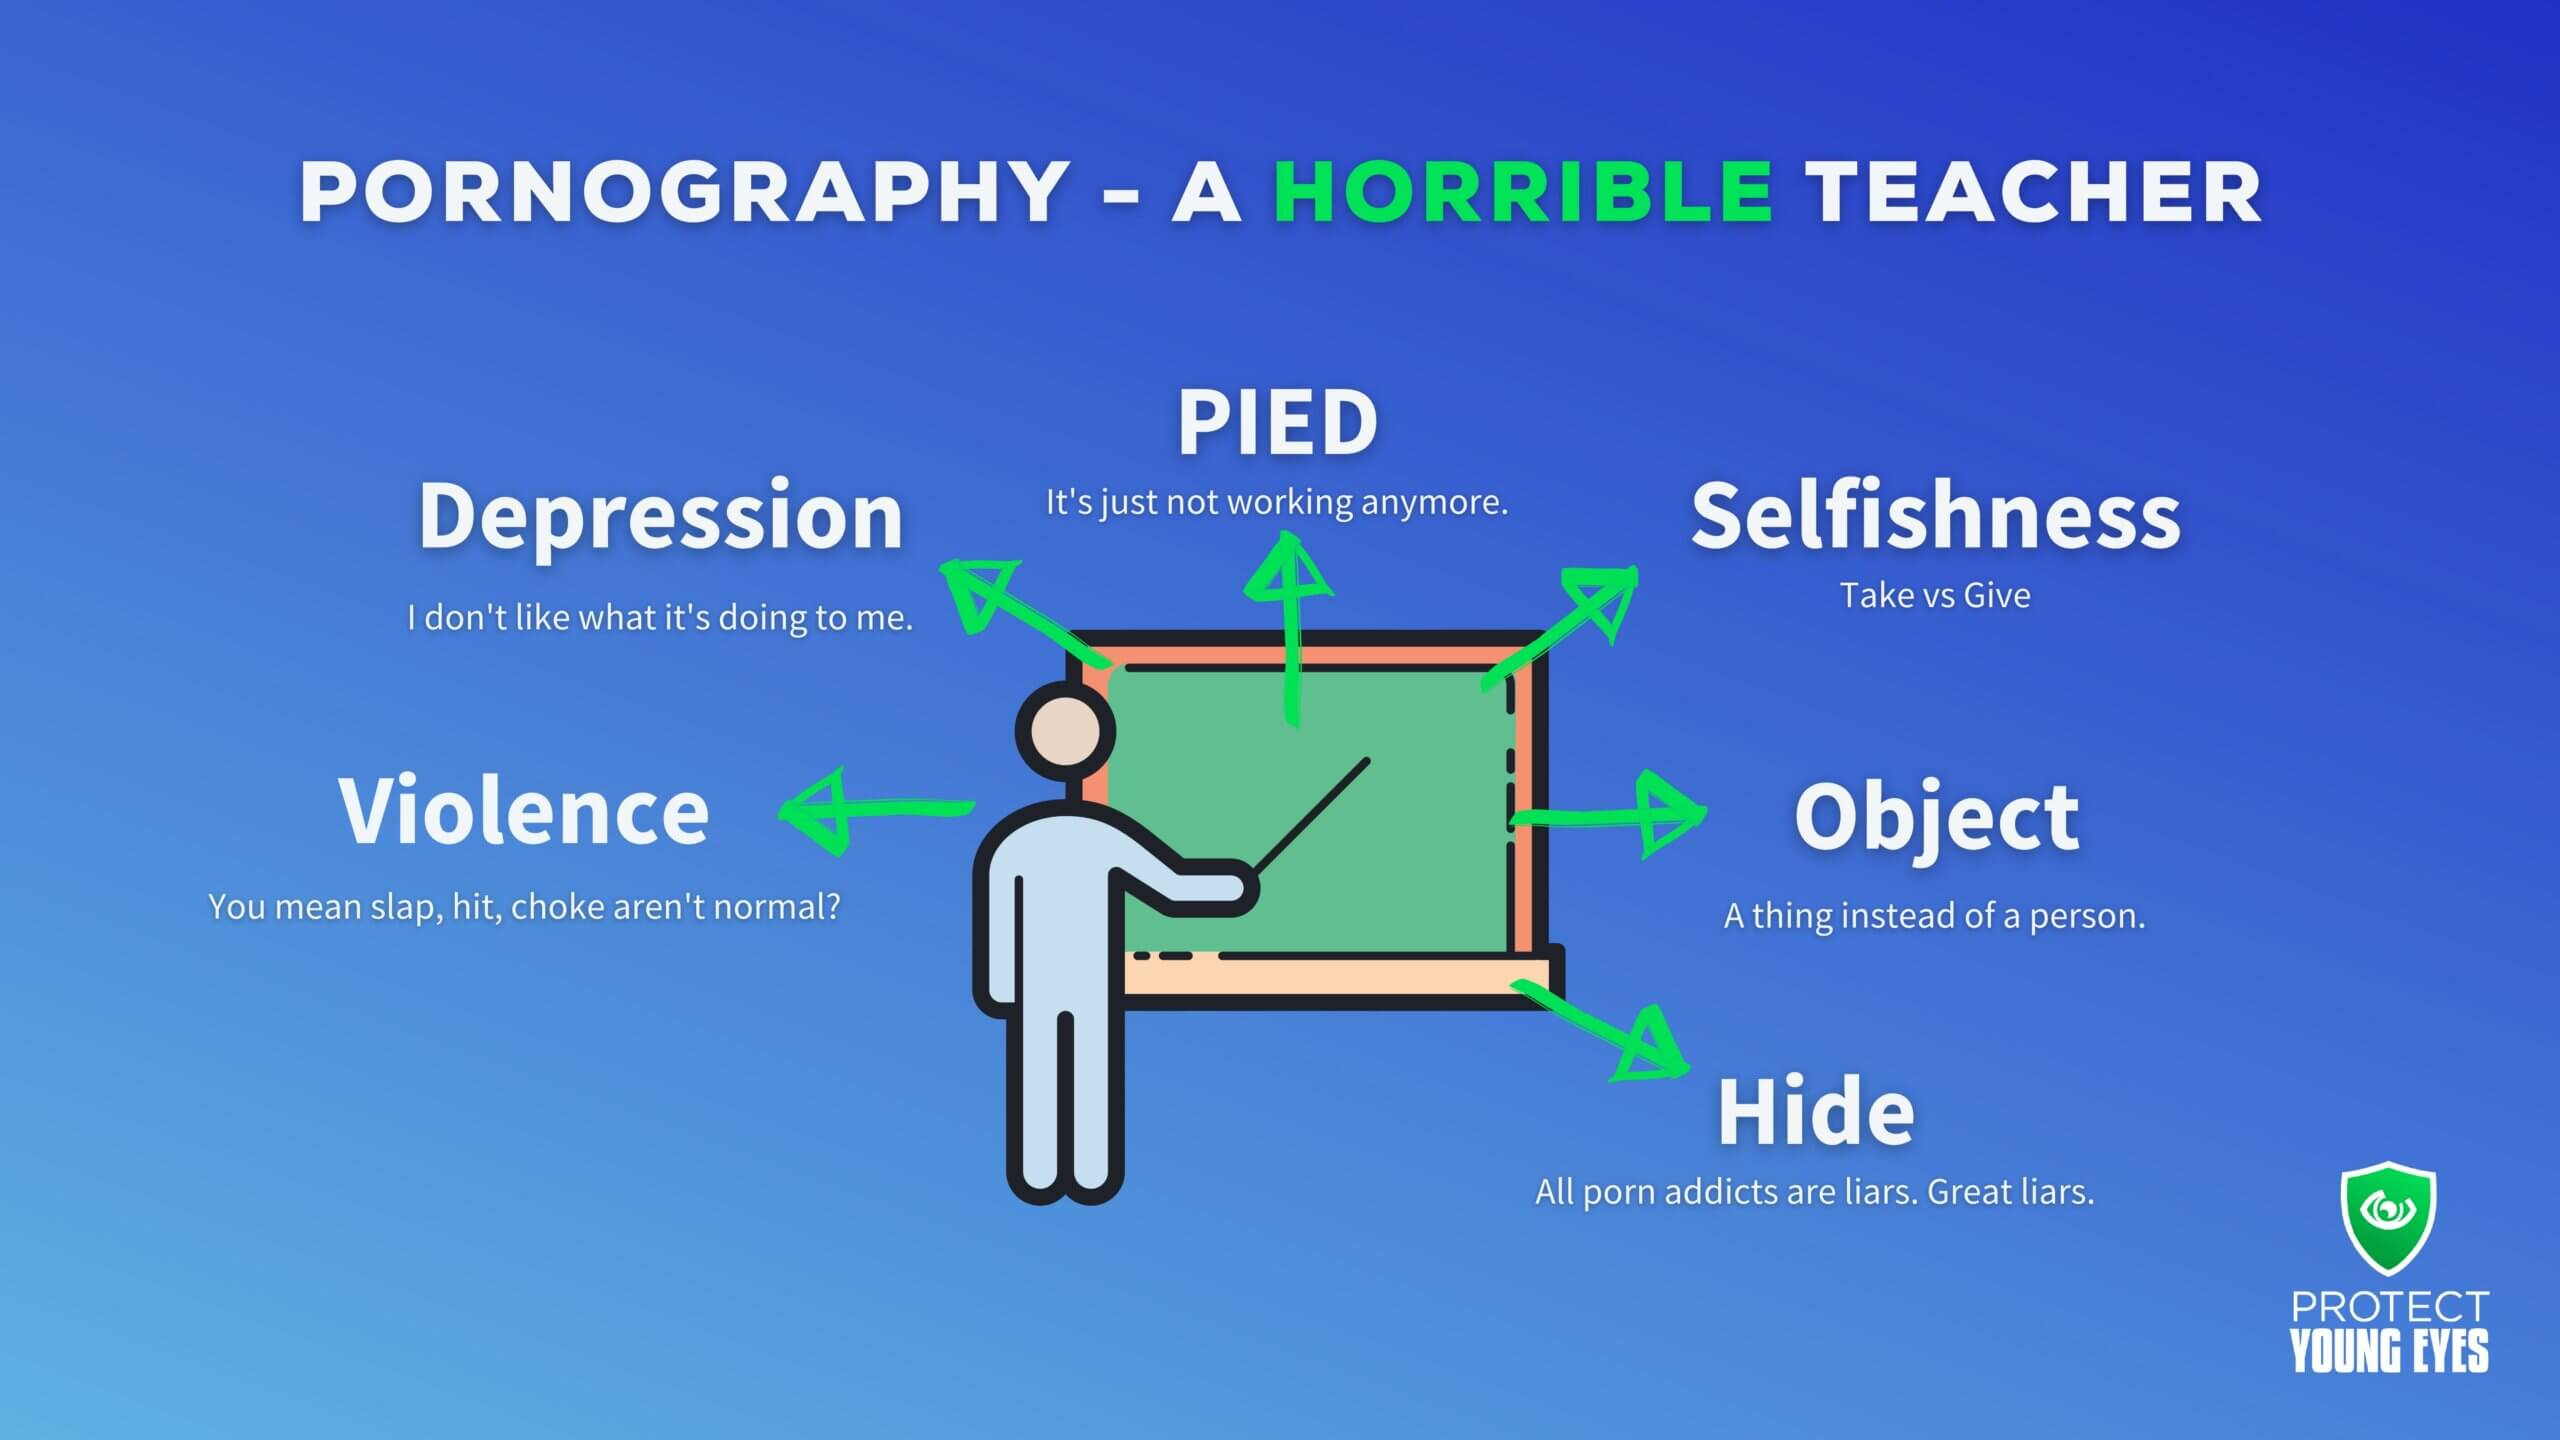 Pornography is a horrible teacher graphic